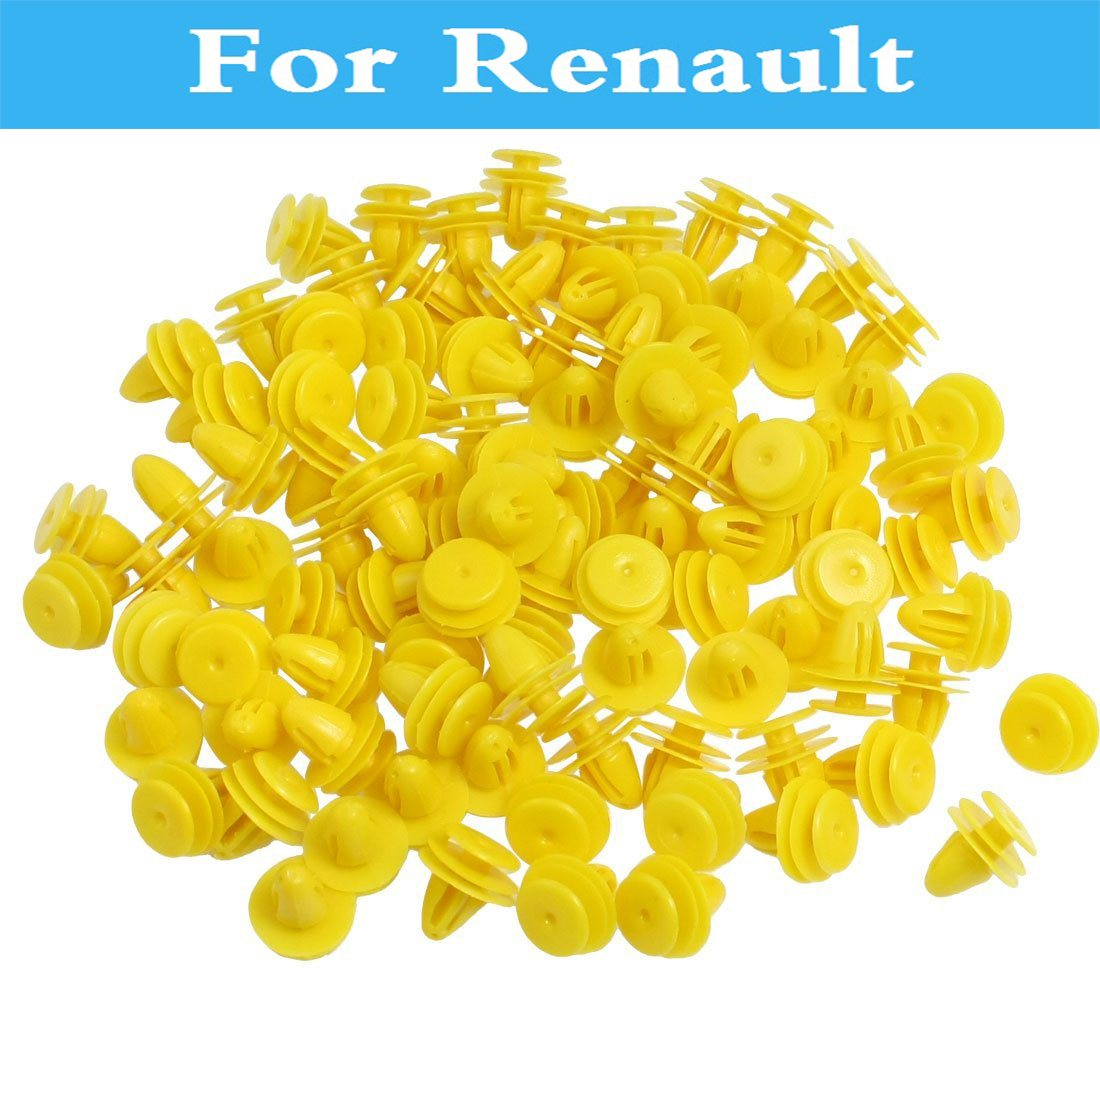 100pcs Rivets Car Bumper Fender Trim Panel Clips Yellow For Renault Twizy Vel Satis Symbol Talisman Twingo Wind Zoe Sandero Rs